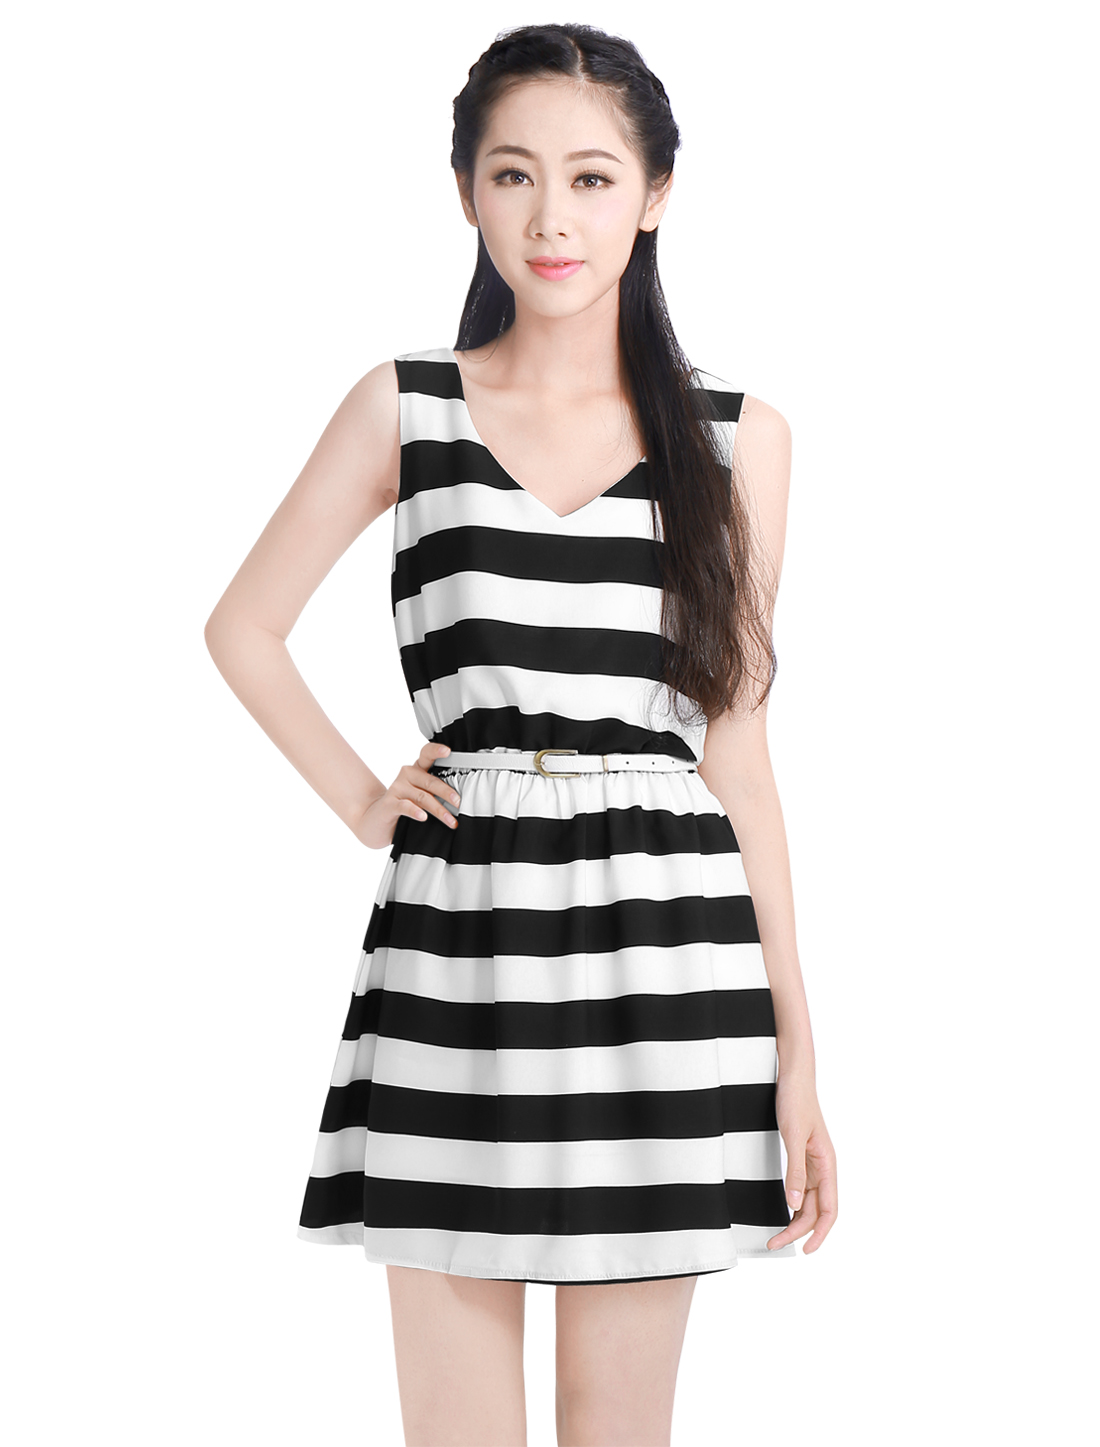 Ladies Black White Bar Striped A-Line Mini Dress w Belt XS